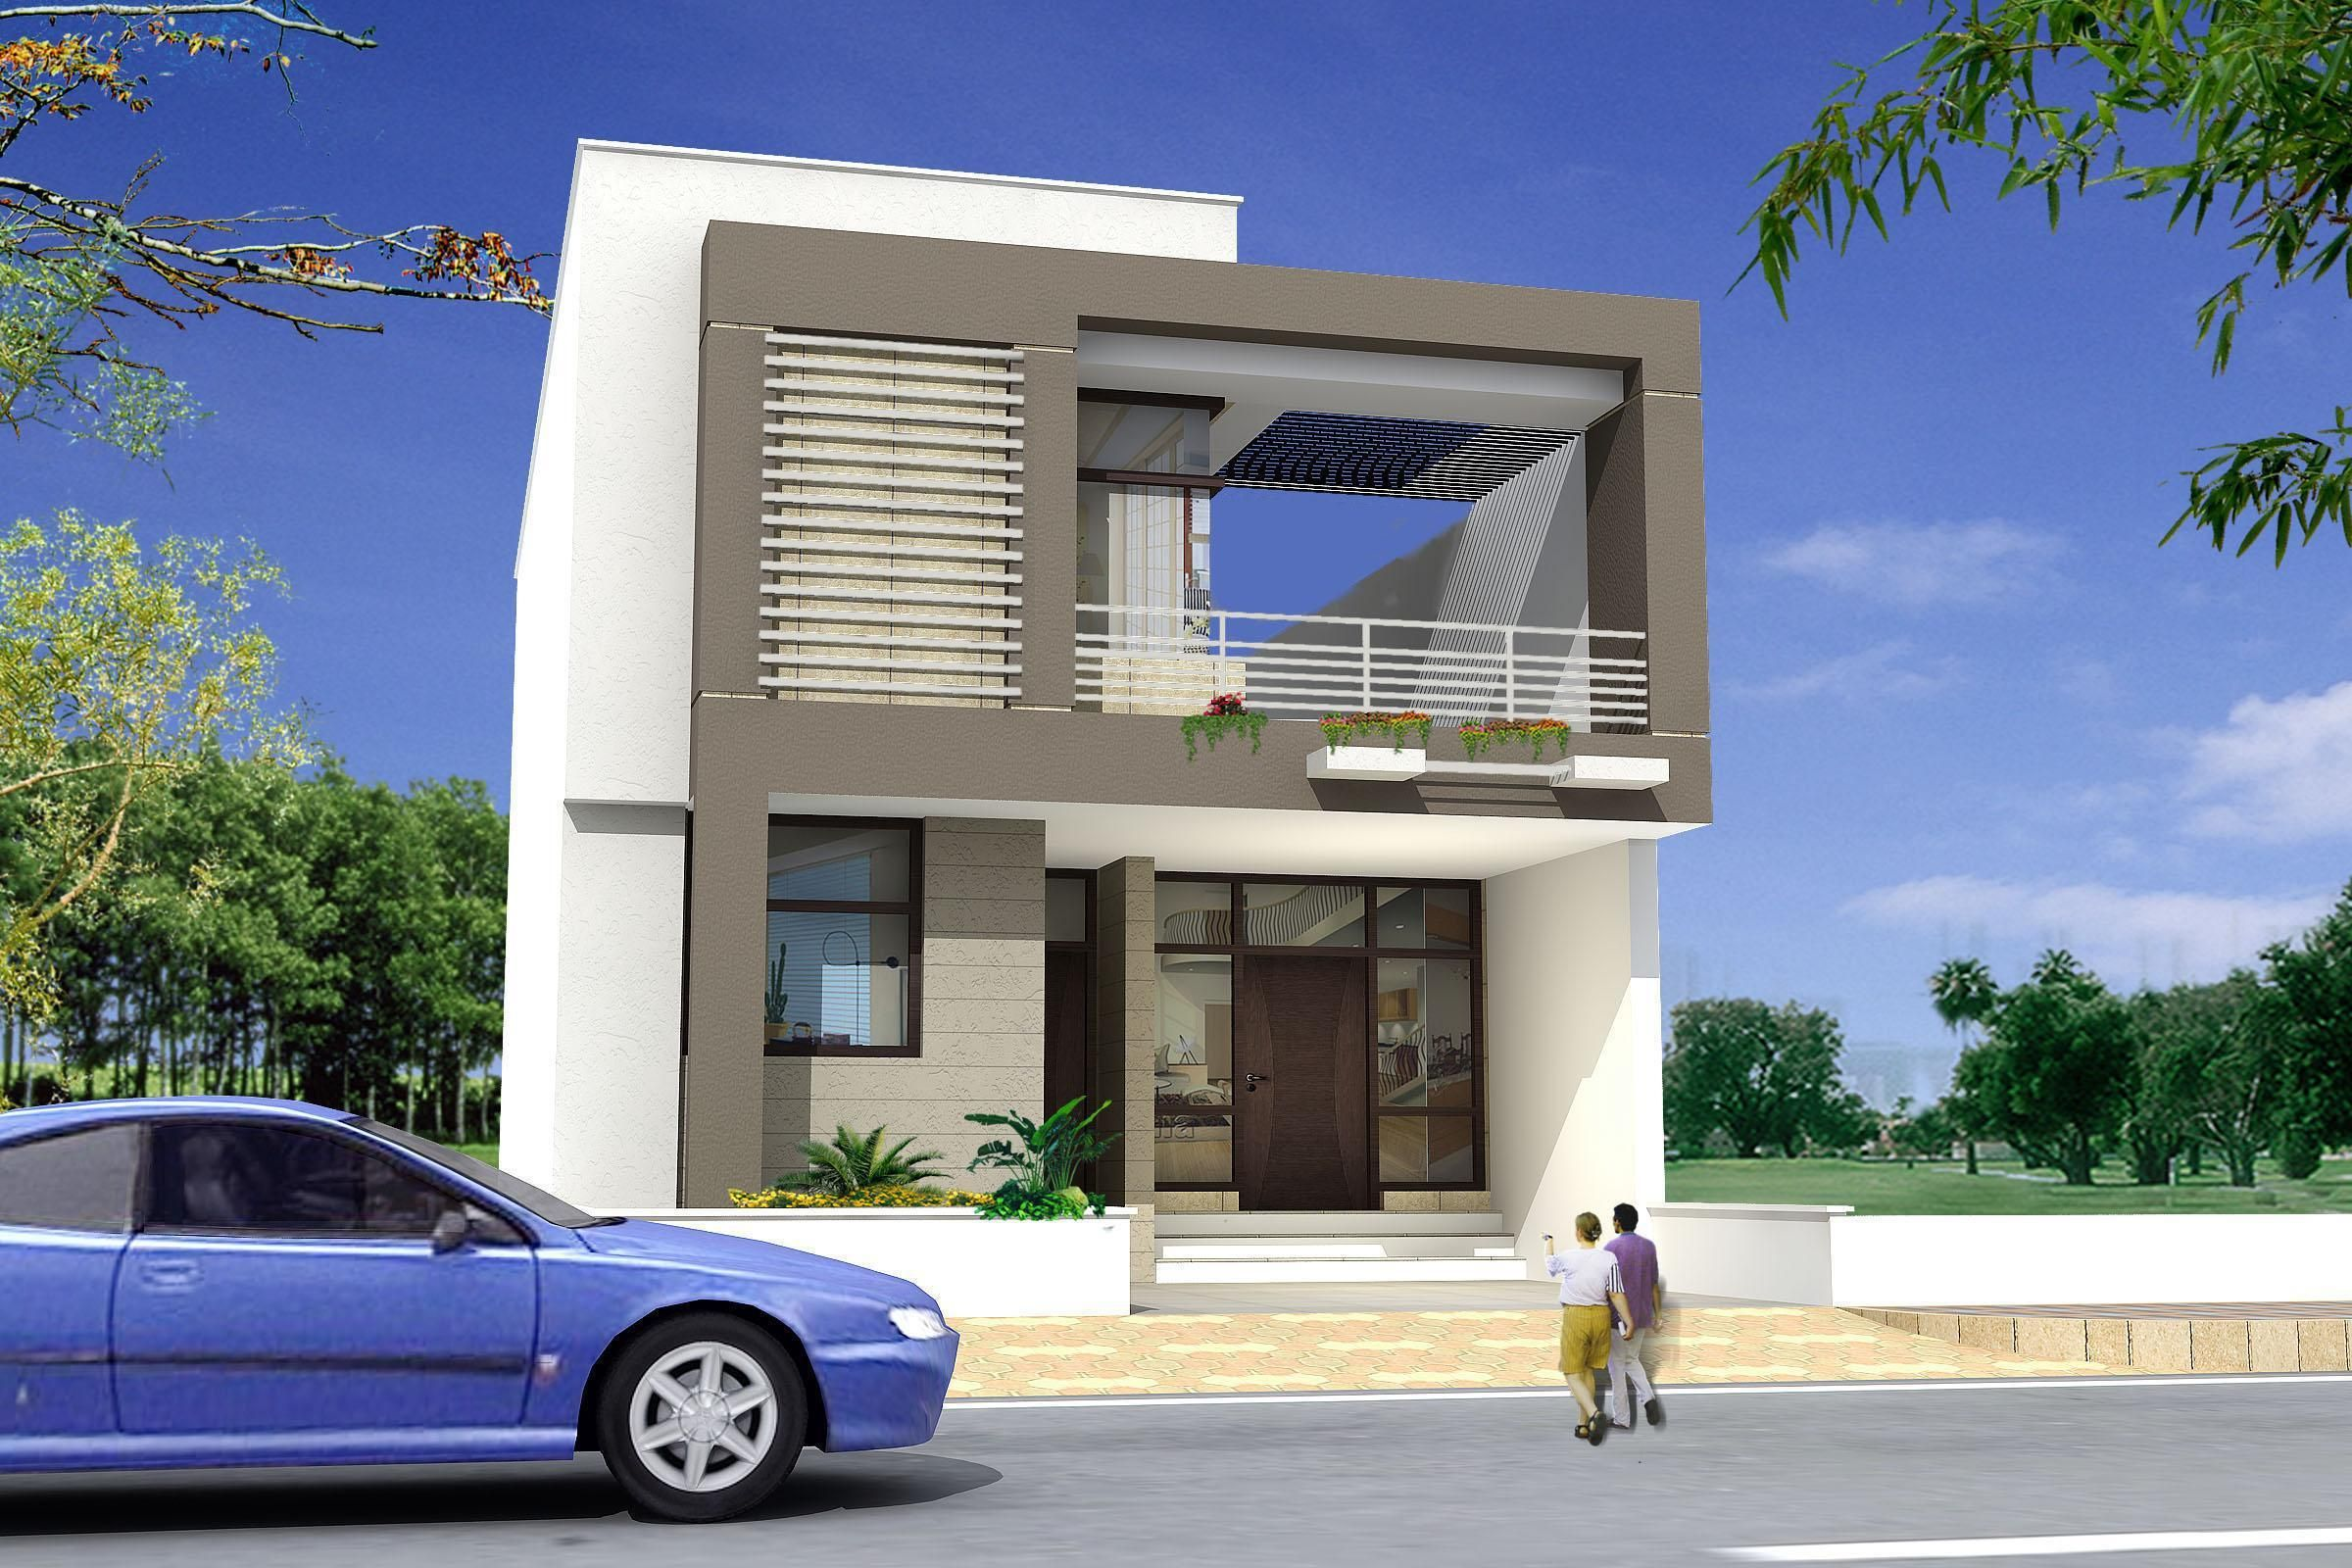 architect online built design modern minimalist house interior